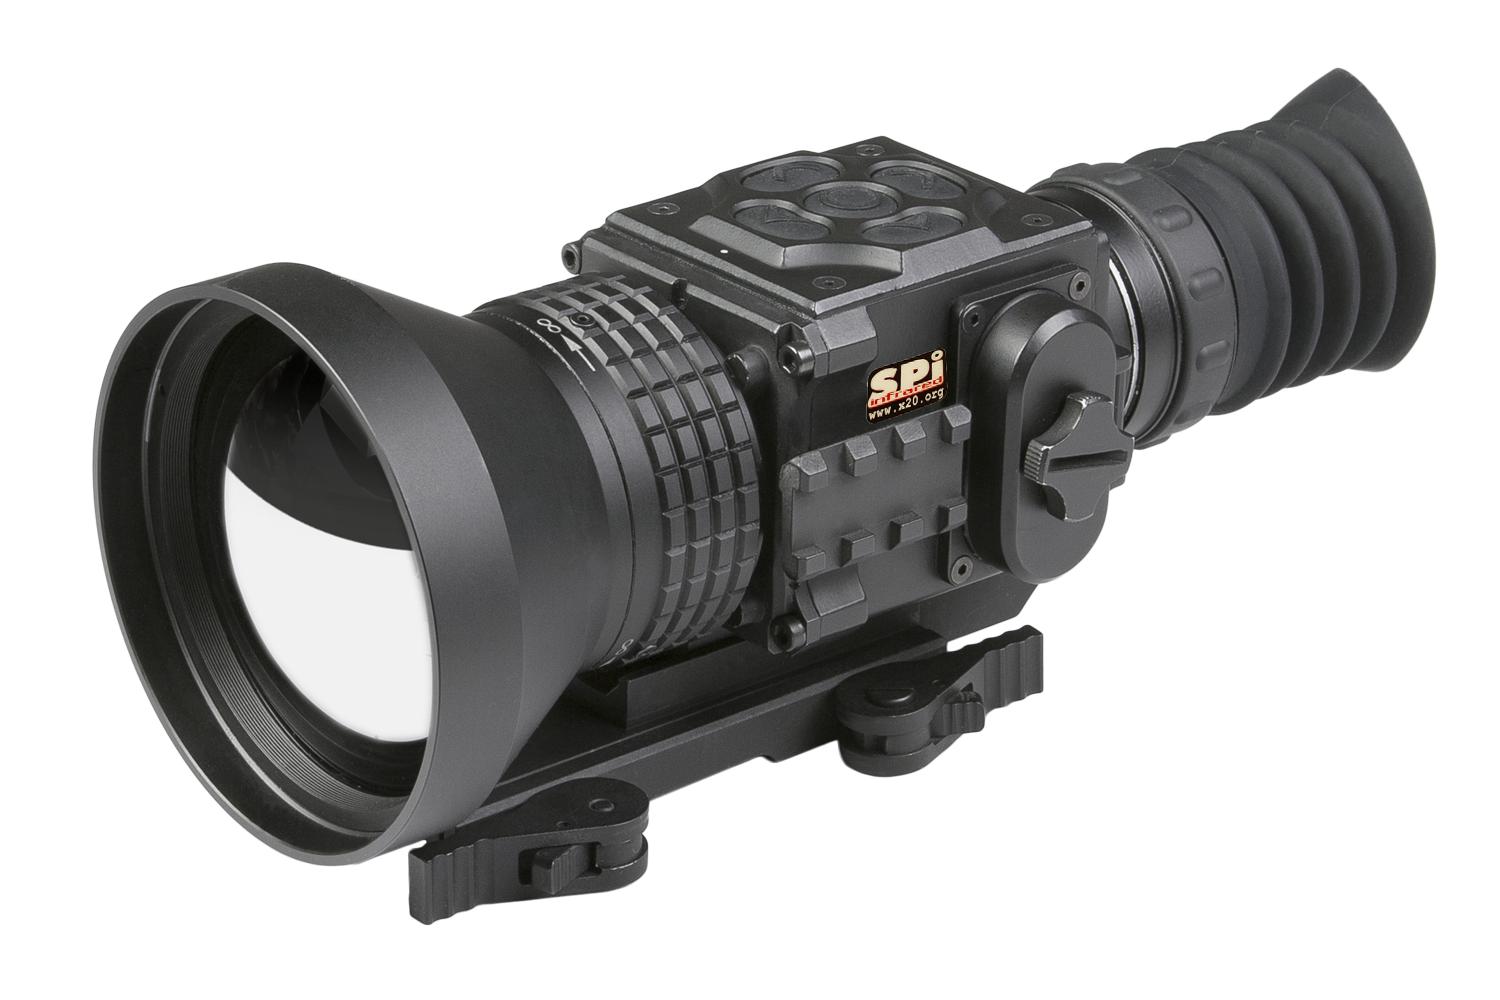 thermal vison imaging scopes military grade hunting weapons